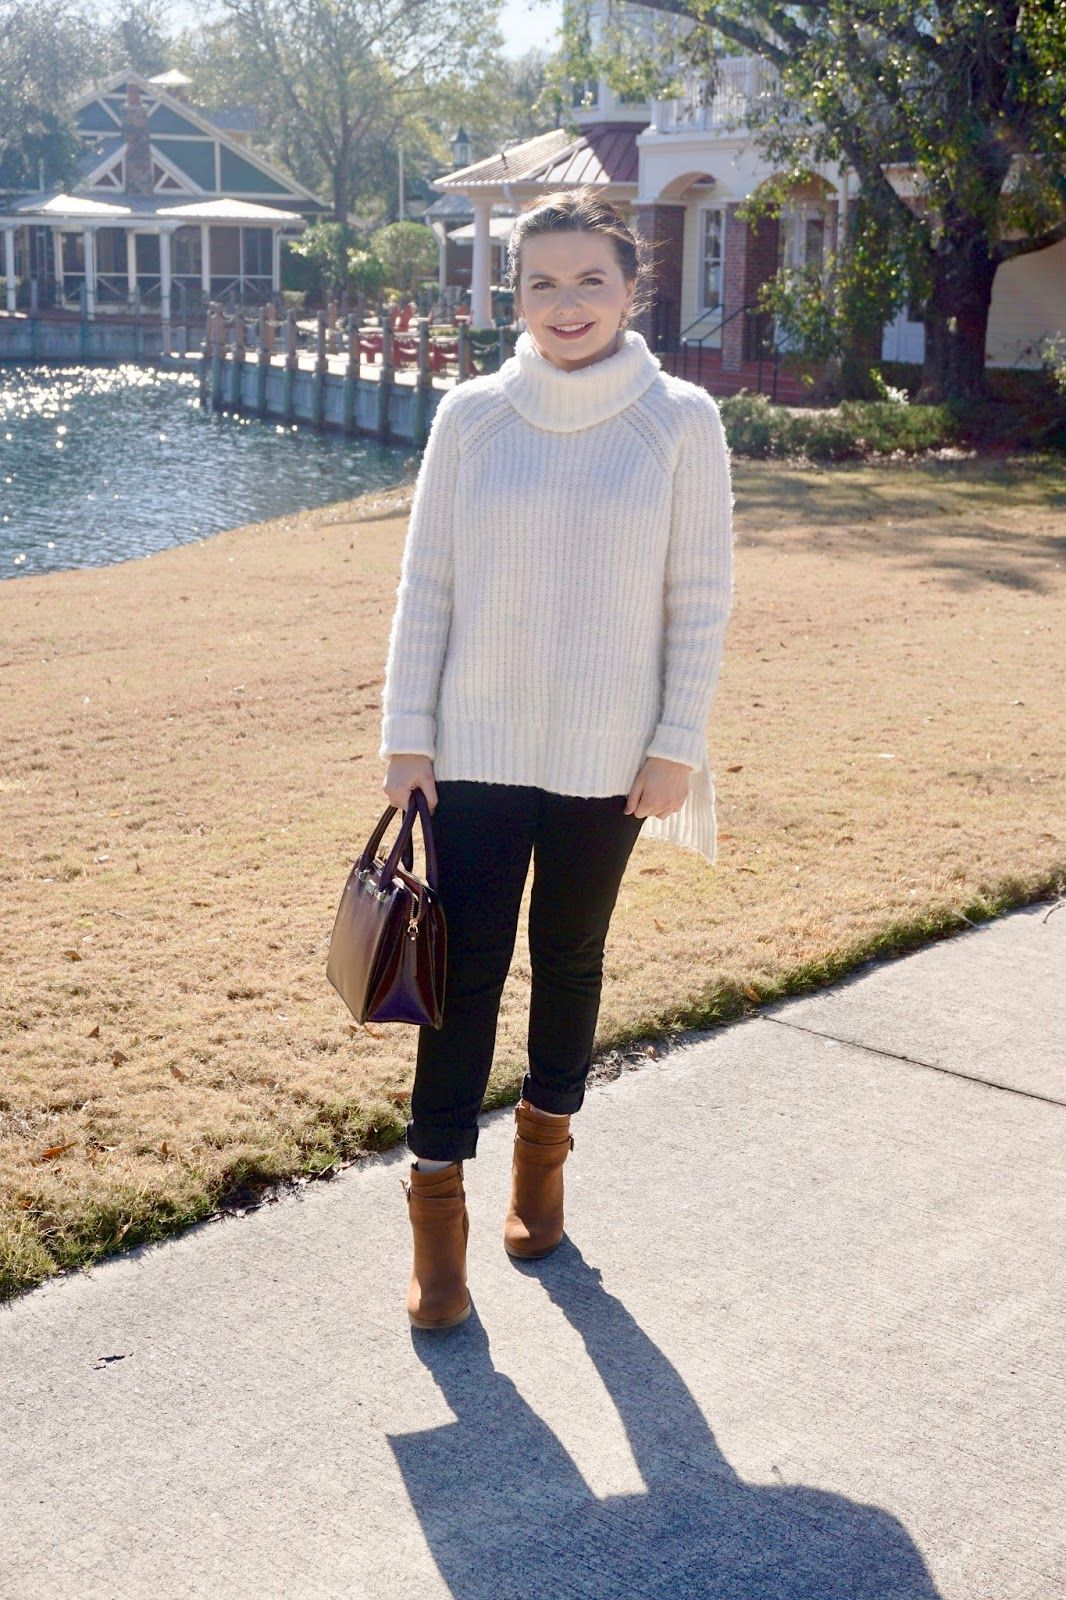 Winter Whites, black denim outfit, chunky white sweater